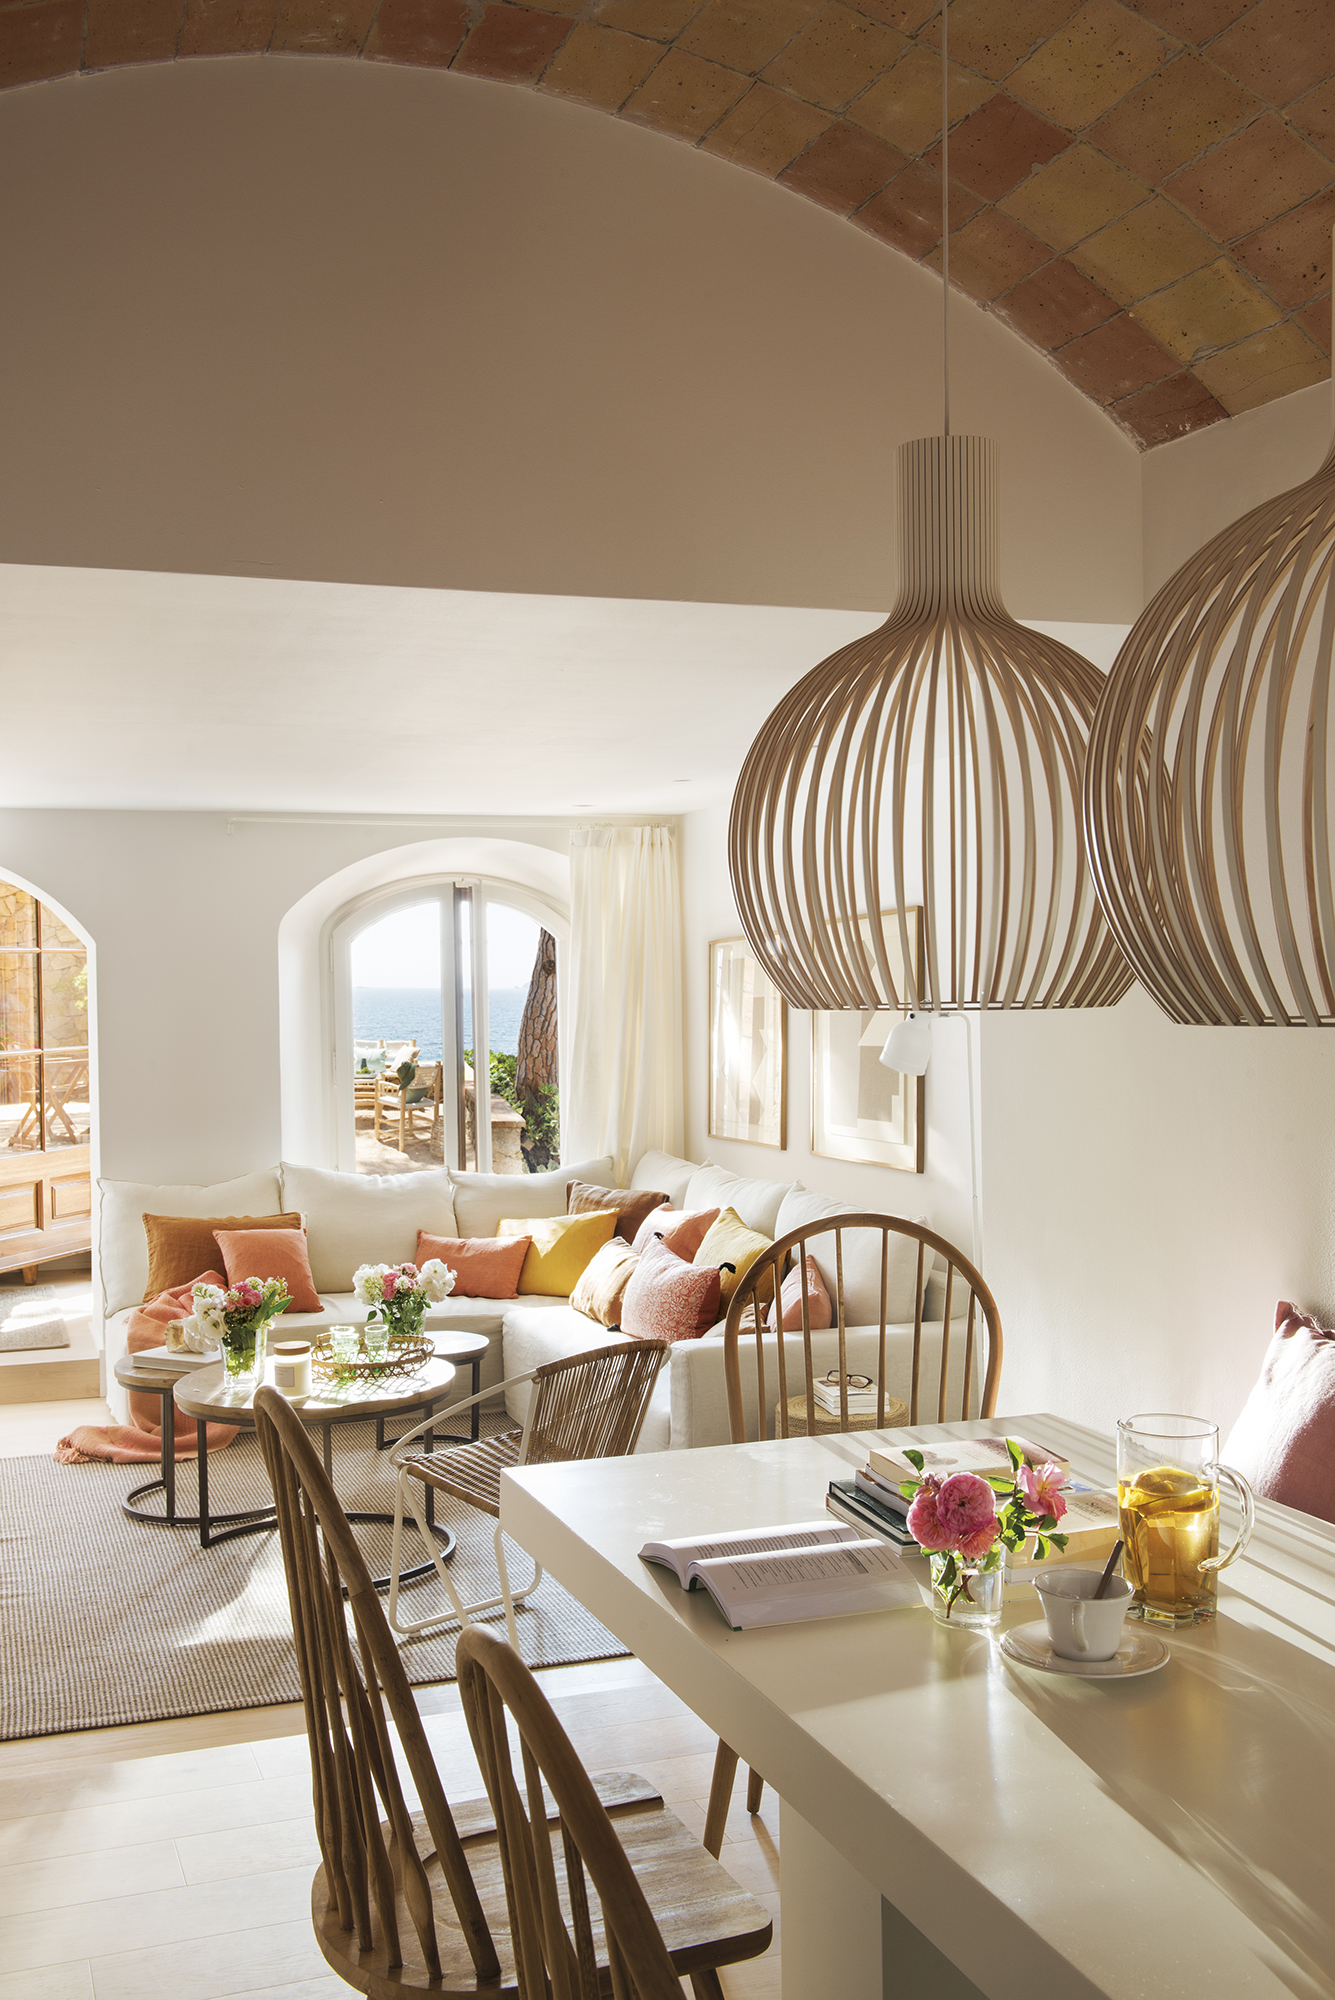 For Interior Designer Bárbara Sindreu, The Renovation Of This Small House  Near The Beach, Surrounded By Pines, Was Not Only A Job But A Real Pleasure  To Do.